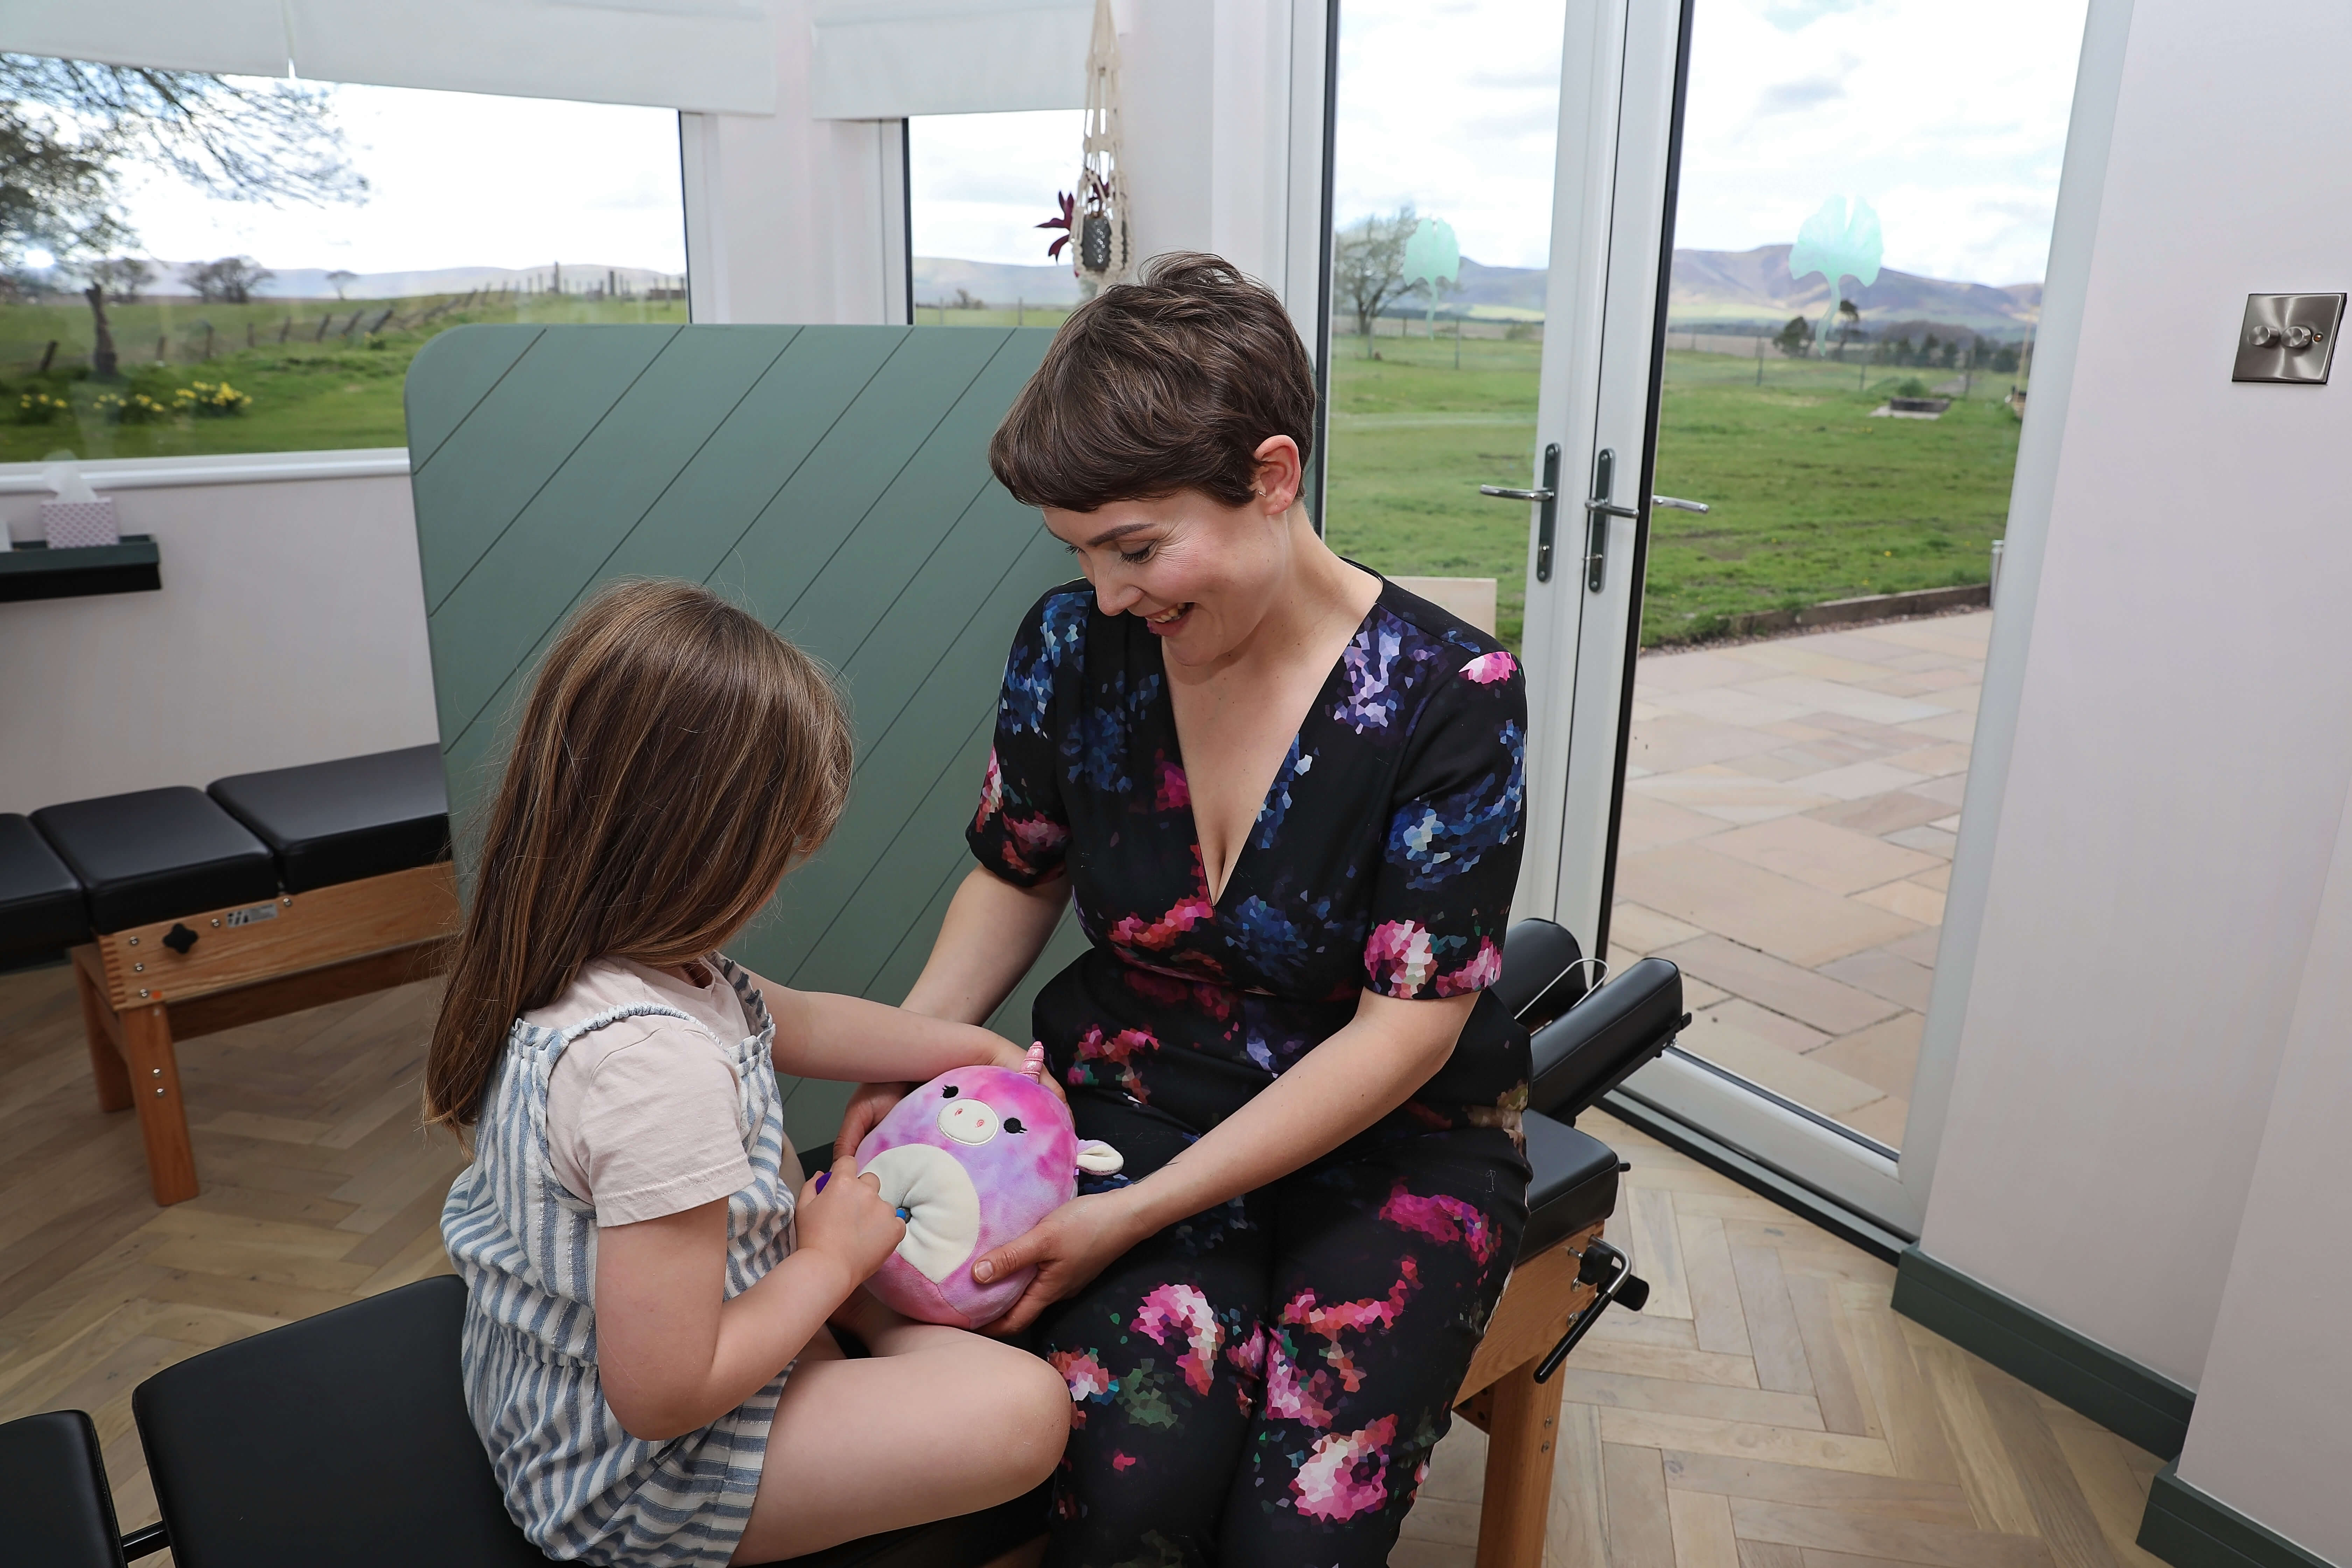 Chiropractor Naomi shows a young girl how to use an adjusting tool on her teddy